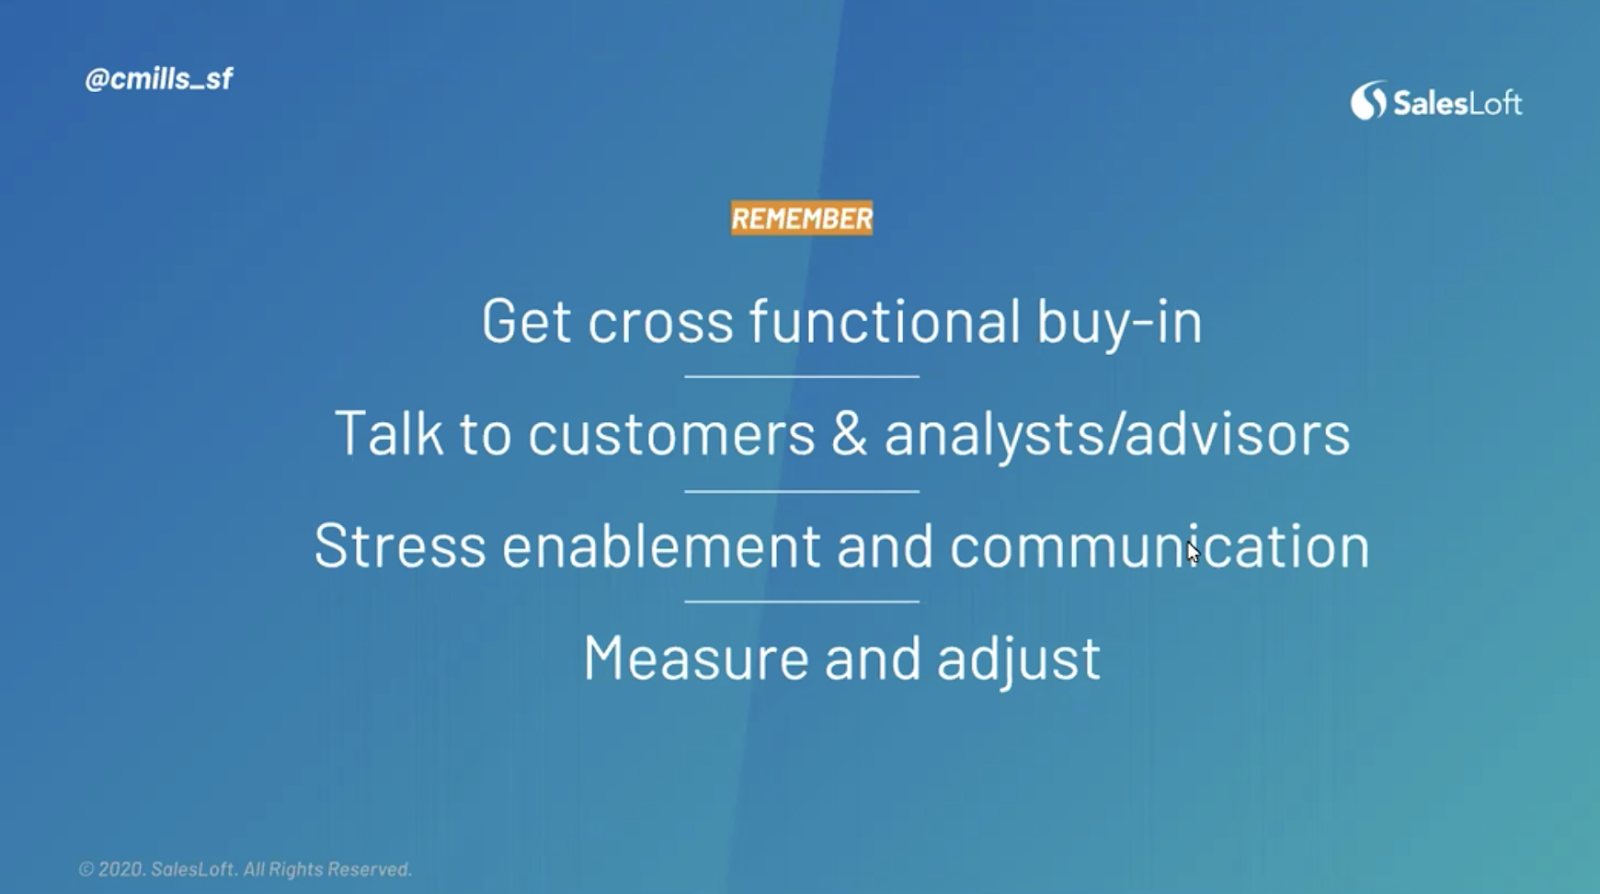 Remember: get cross functional buy-in, talk to customers and analyst/advisors, stress enablement and communication, measure and adjust.